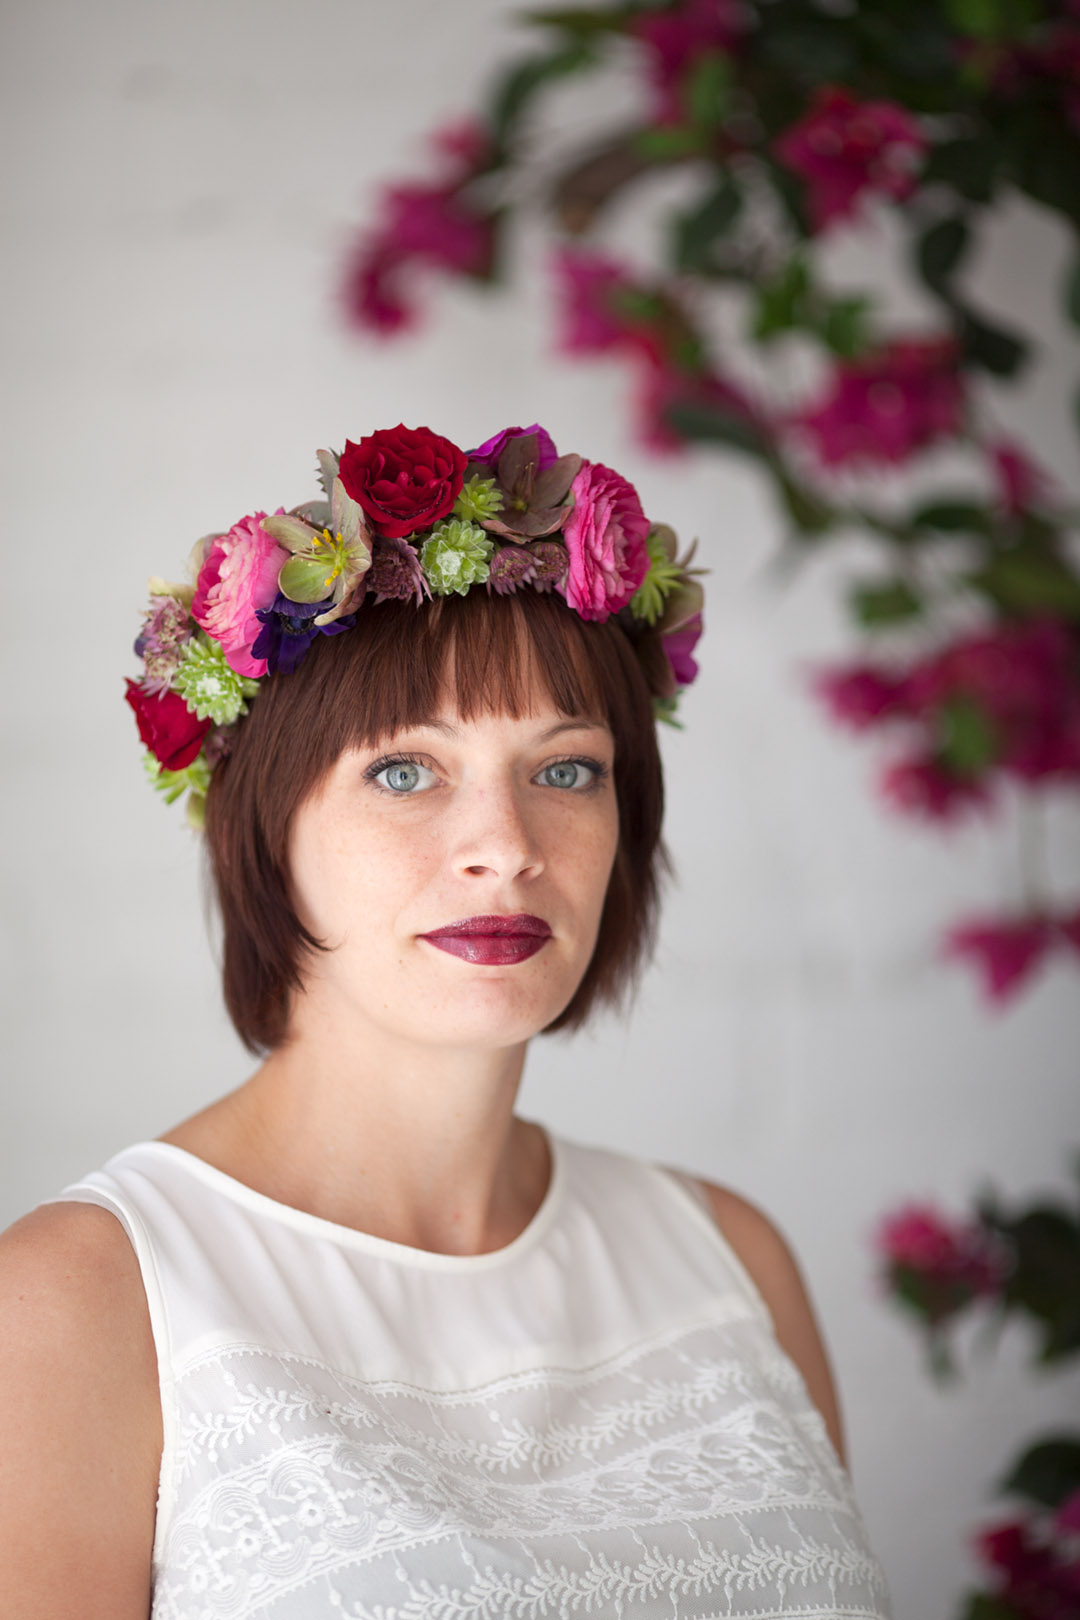 floral crown by Art in Bloem